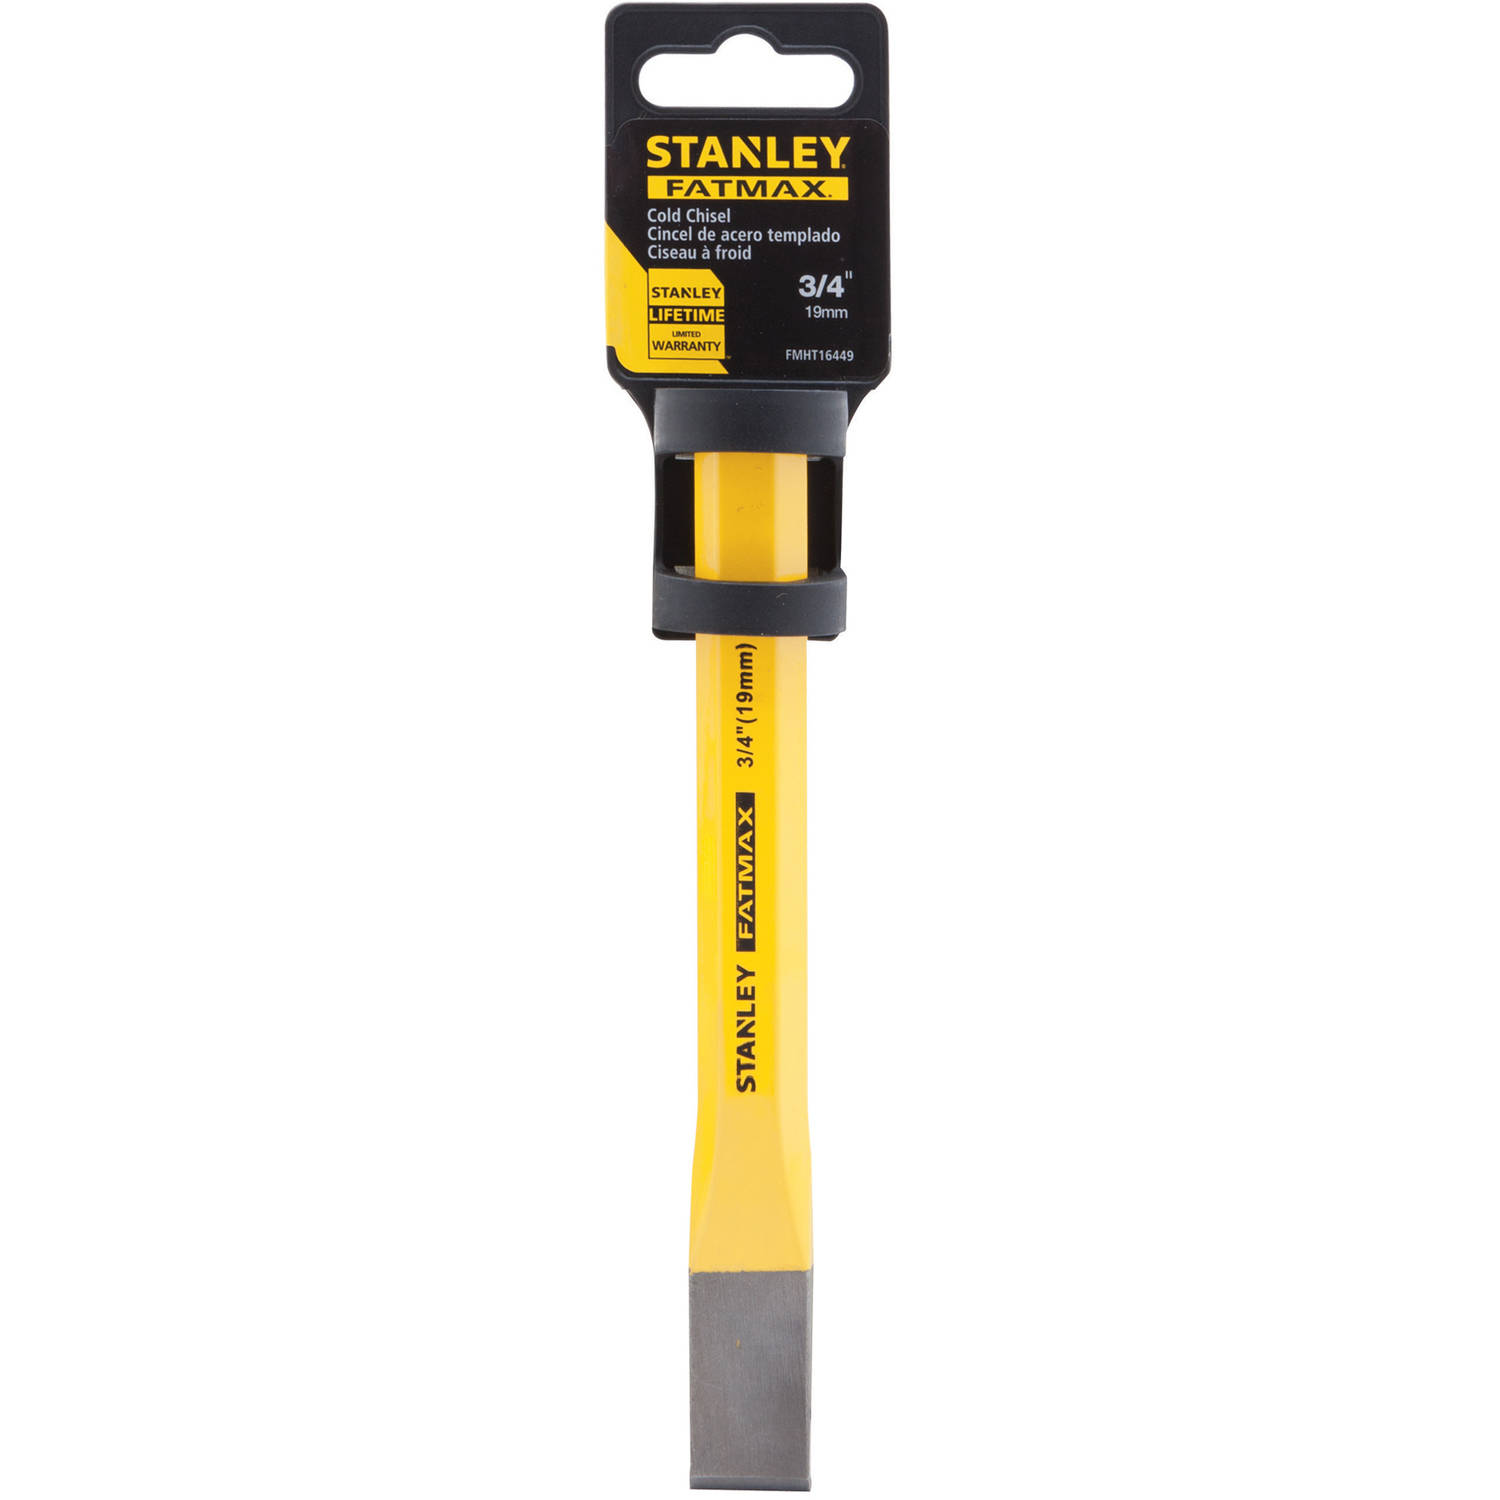 Stanley 16-290 Cold Chisel,7//8 Inch